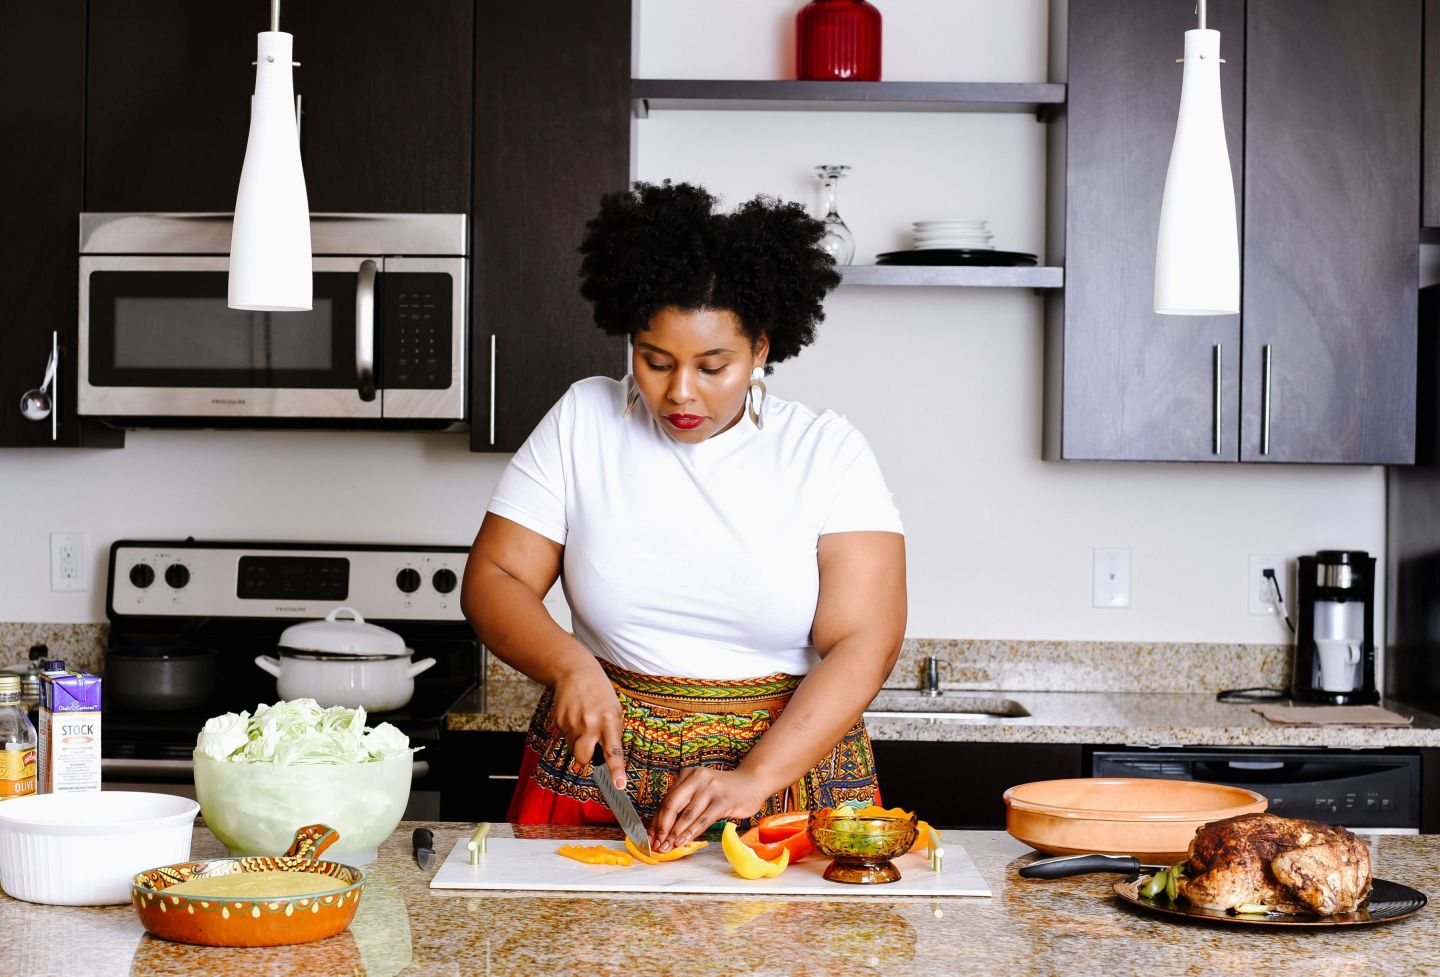 Chakayla11of1-1440x977 North Carolina Chef Gives 3 Tips for Making Cooking at Home Easier